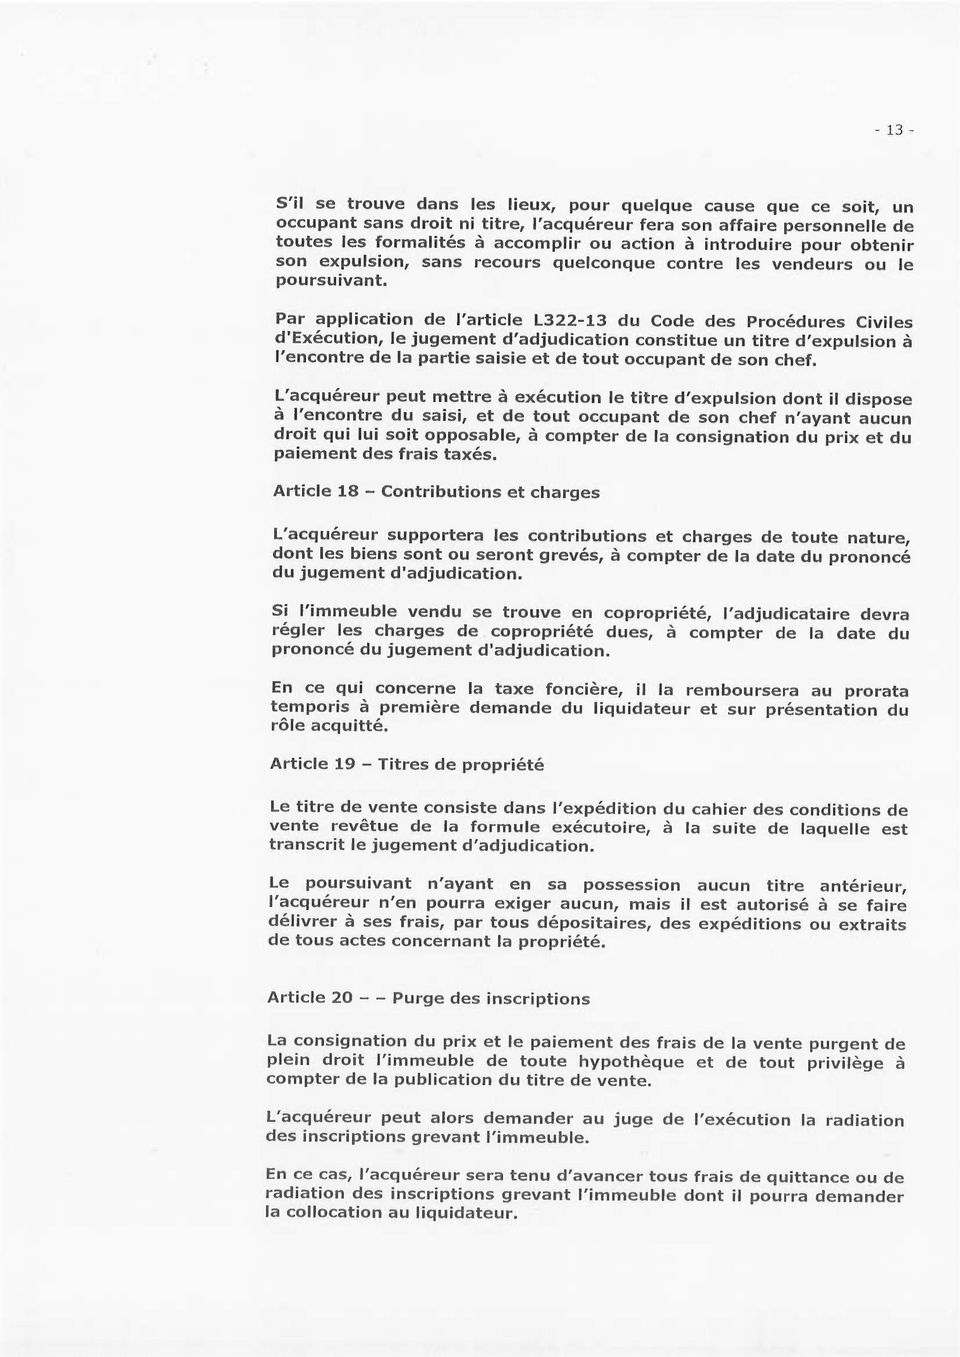 Par application de l'article L322-13 du Code des Procédures Civiles d'exécution, le jugement d'adjudication constitue un titre d'expulsion à l'encontre de la partie saisie et de tout occupant de son